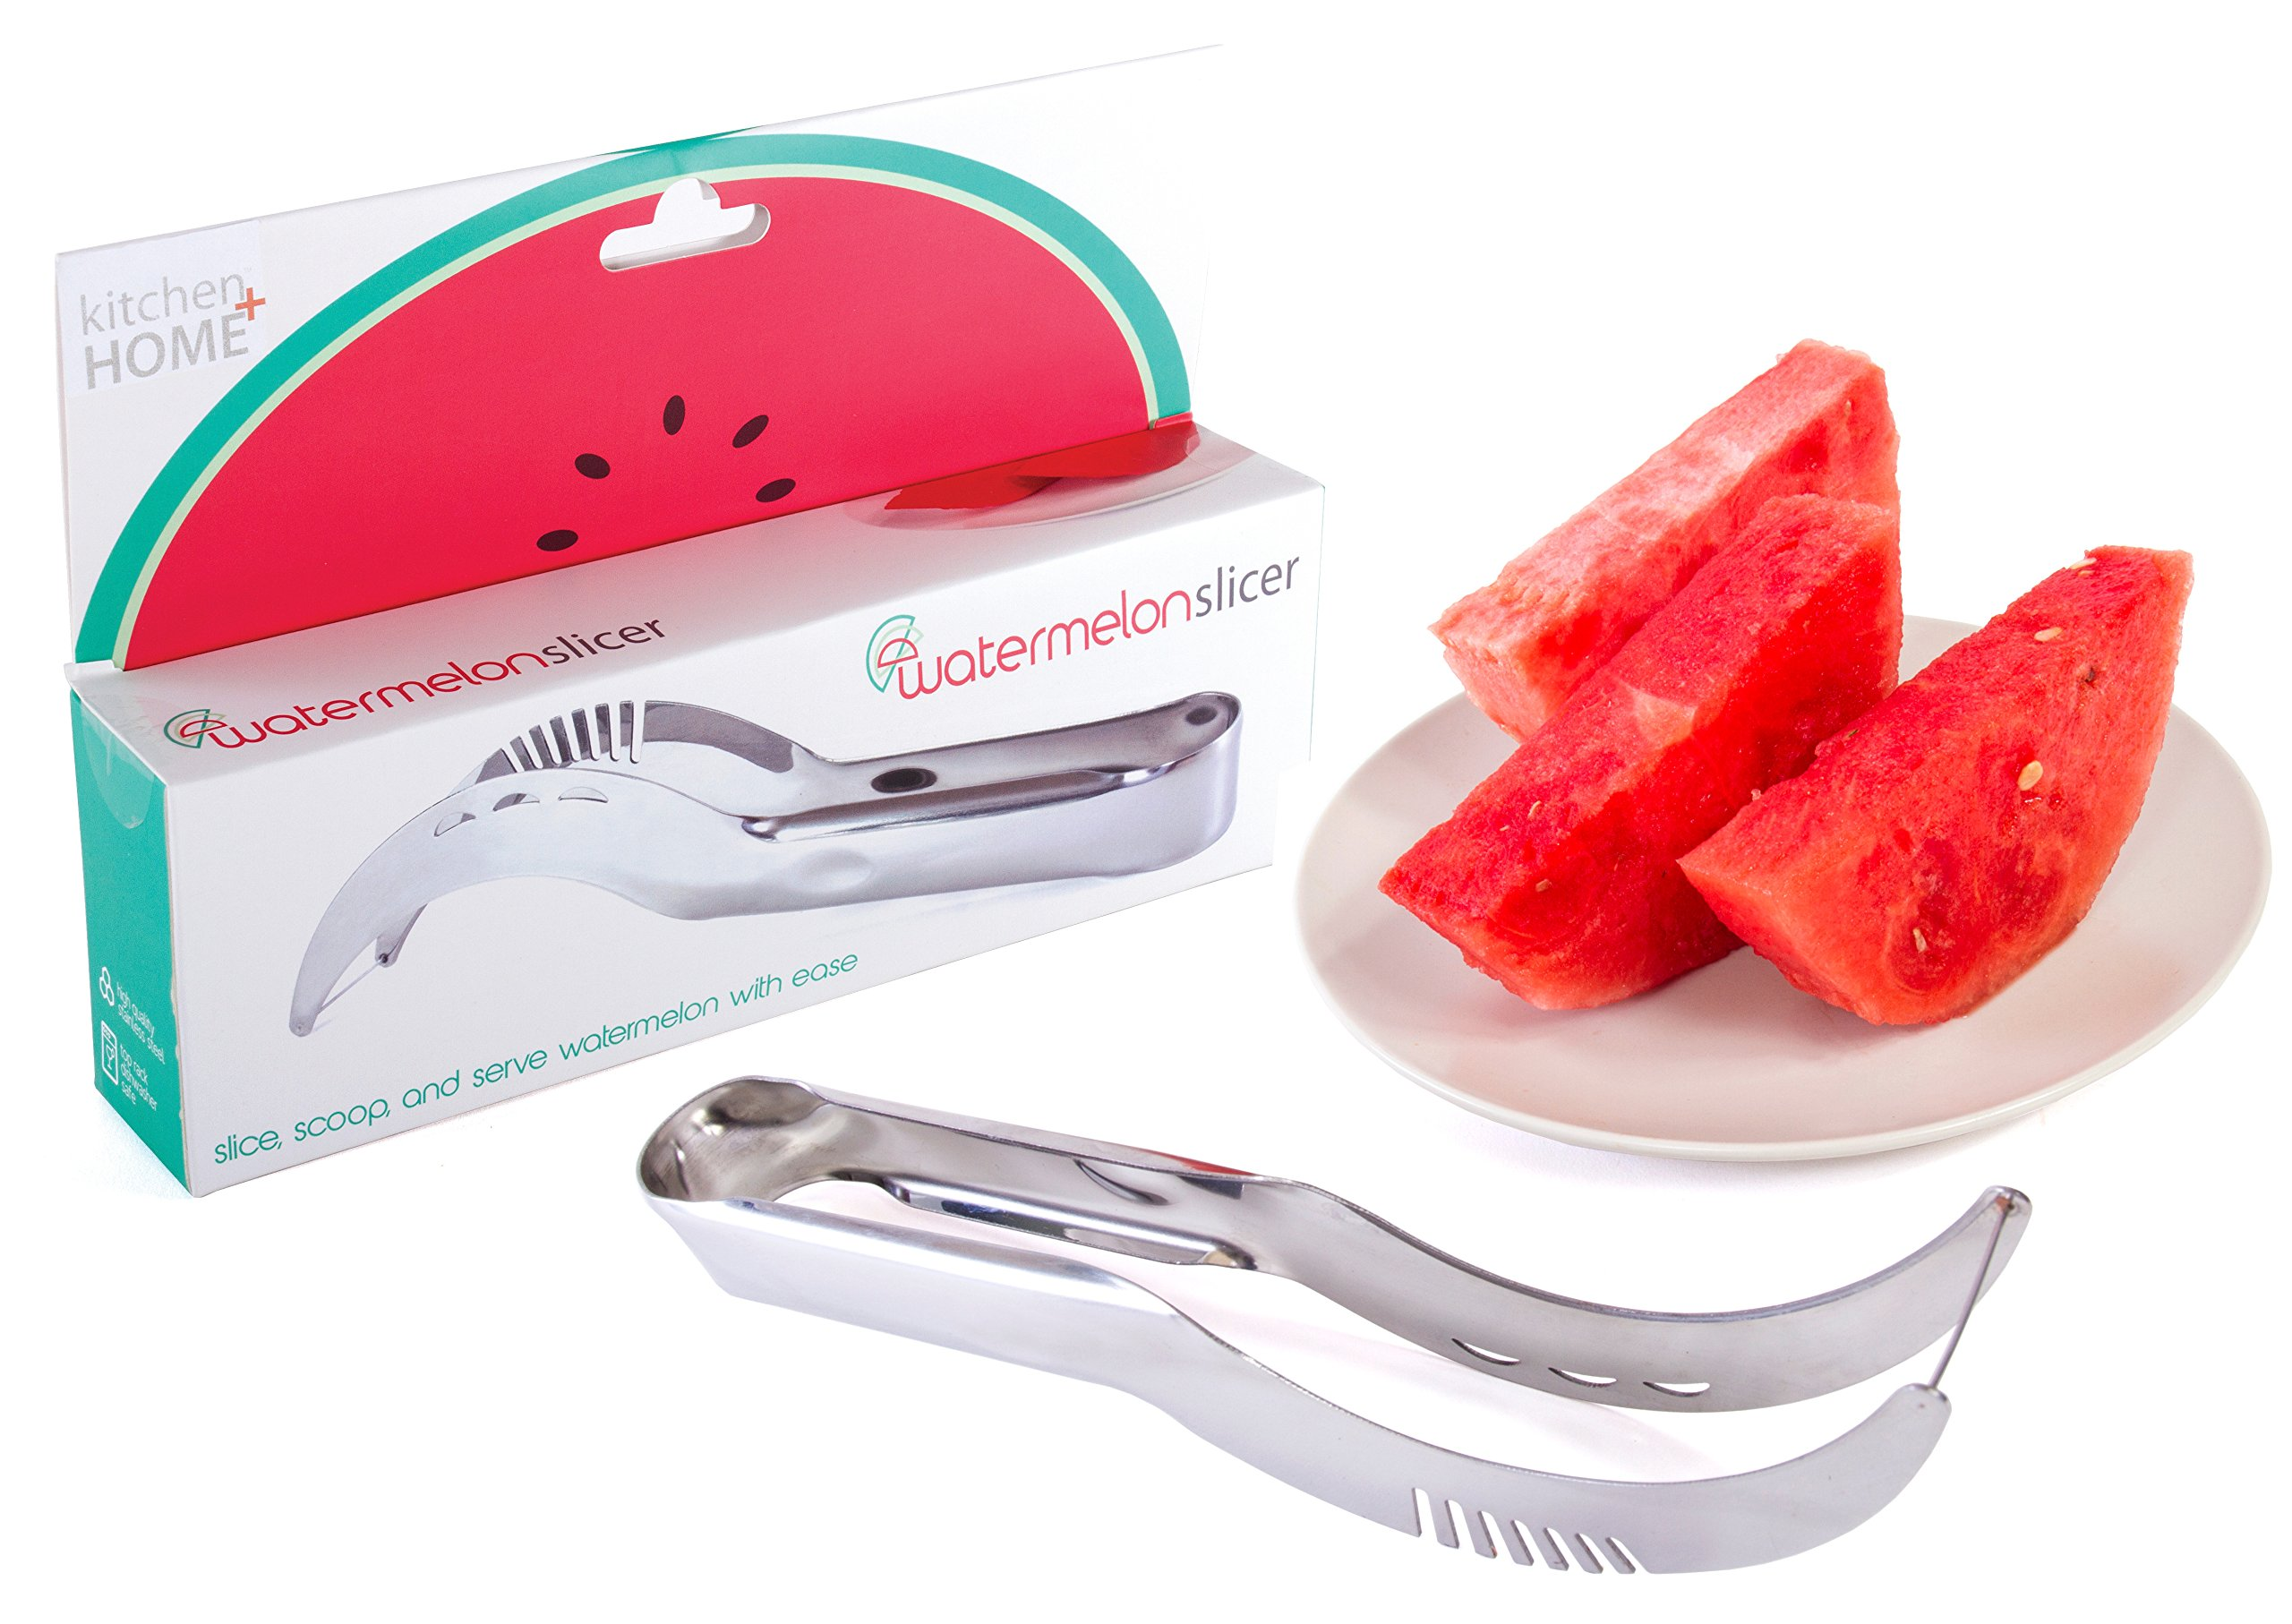 Kitchen + Home Watermelon Slicer Corer and Server - Highest Quality 18/10 Stainless Steel Melon Slicer